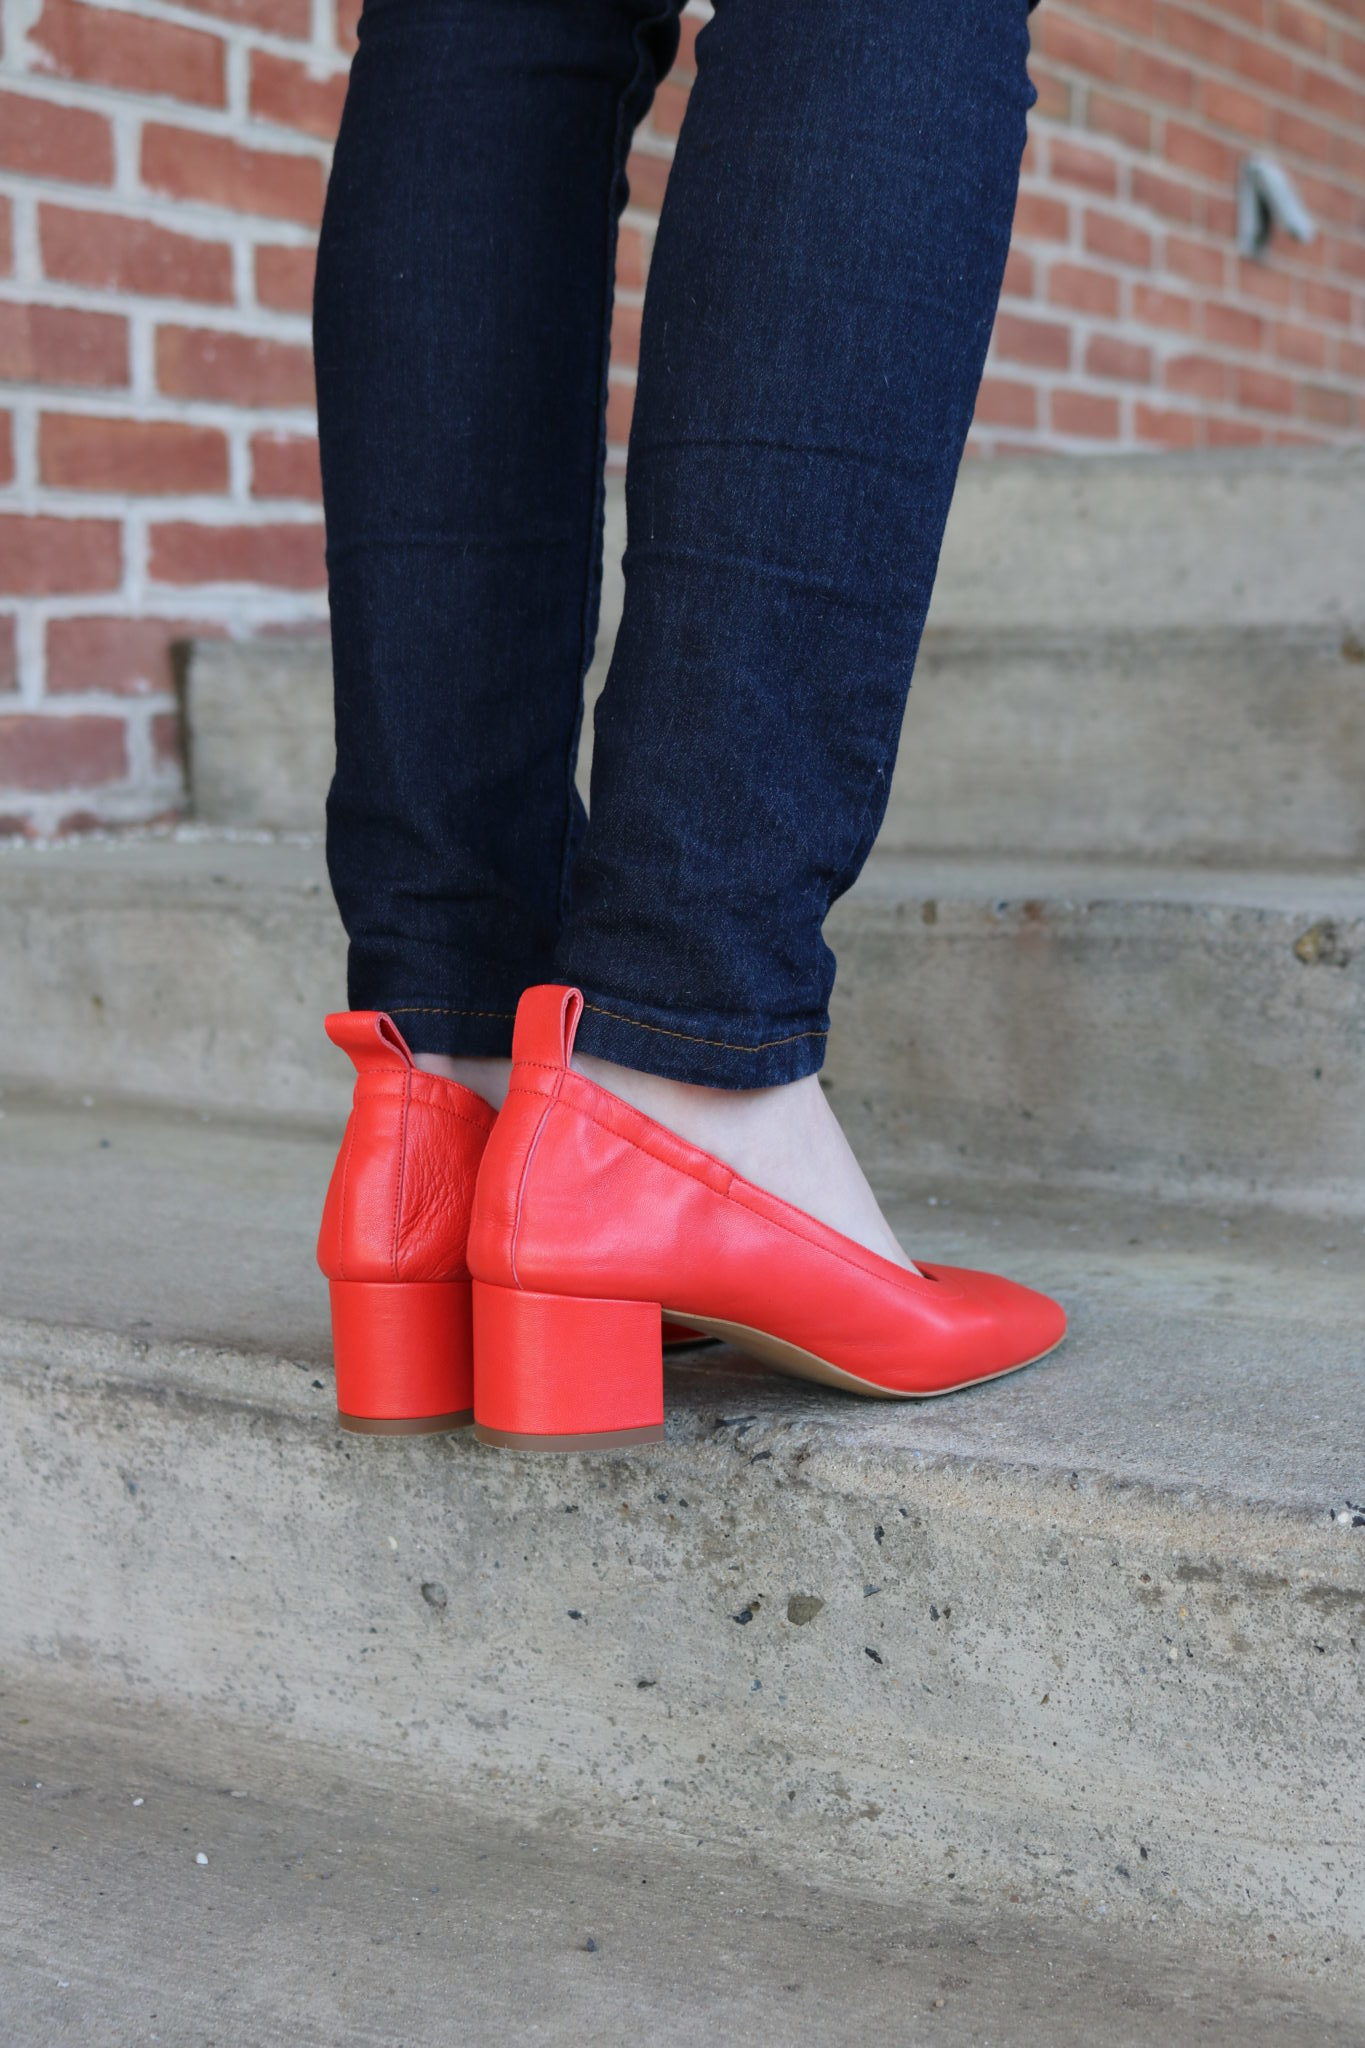 The 6 The 6 most comfy shoes for work by popular Philadelphia fashion blogger Coming Up Roses comfy shoes for work